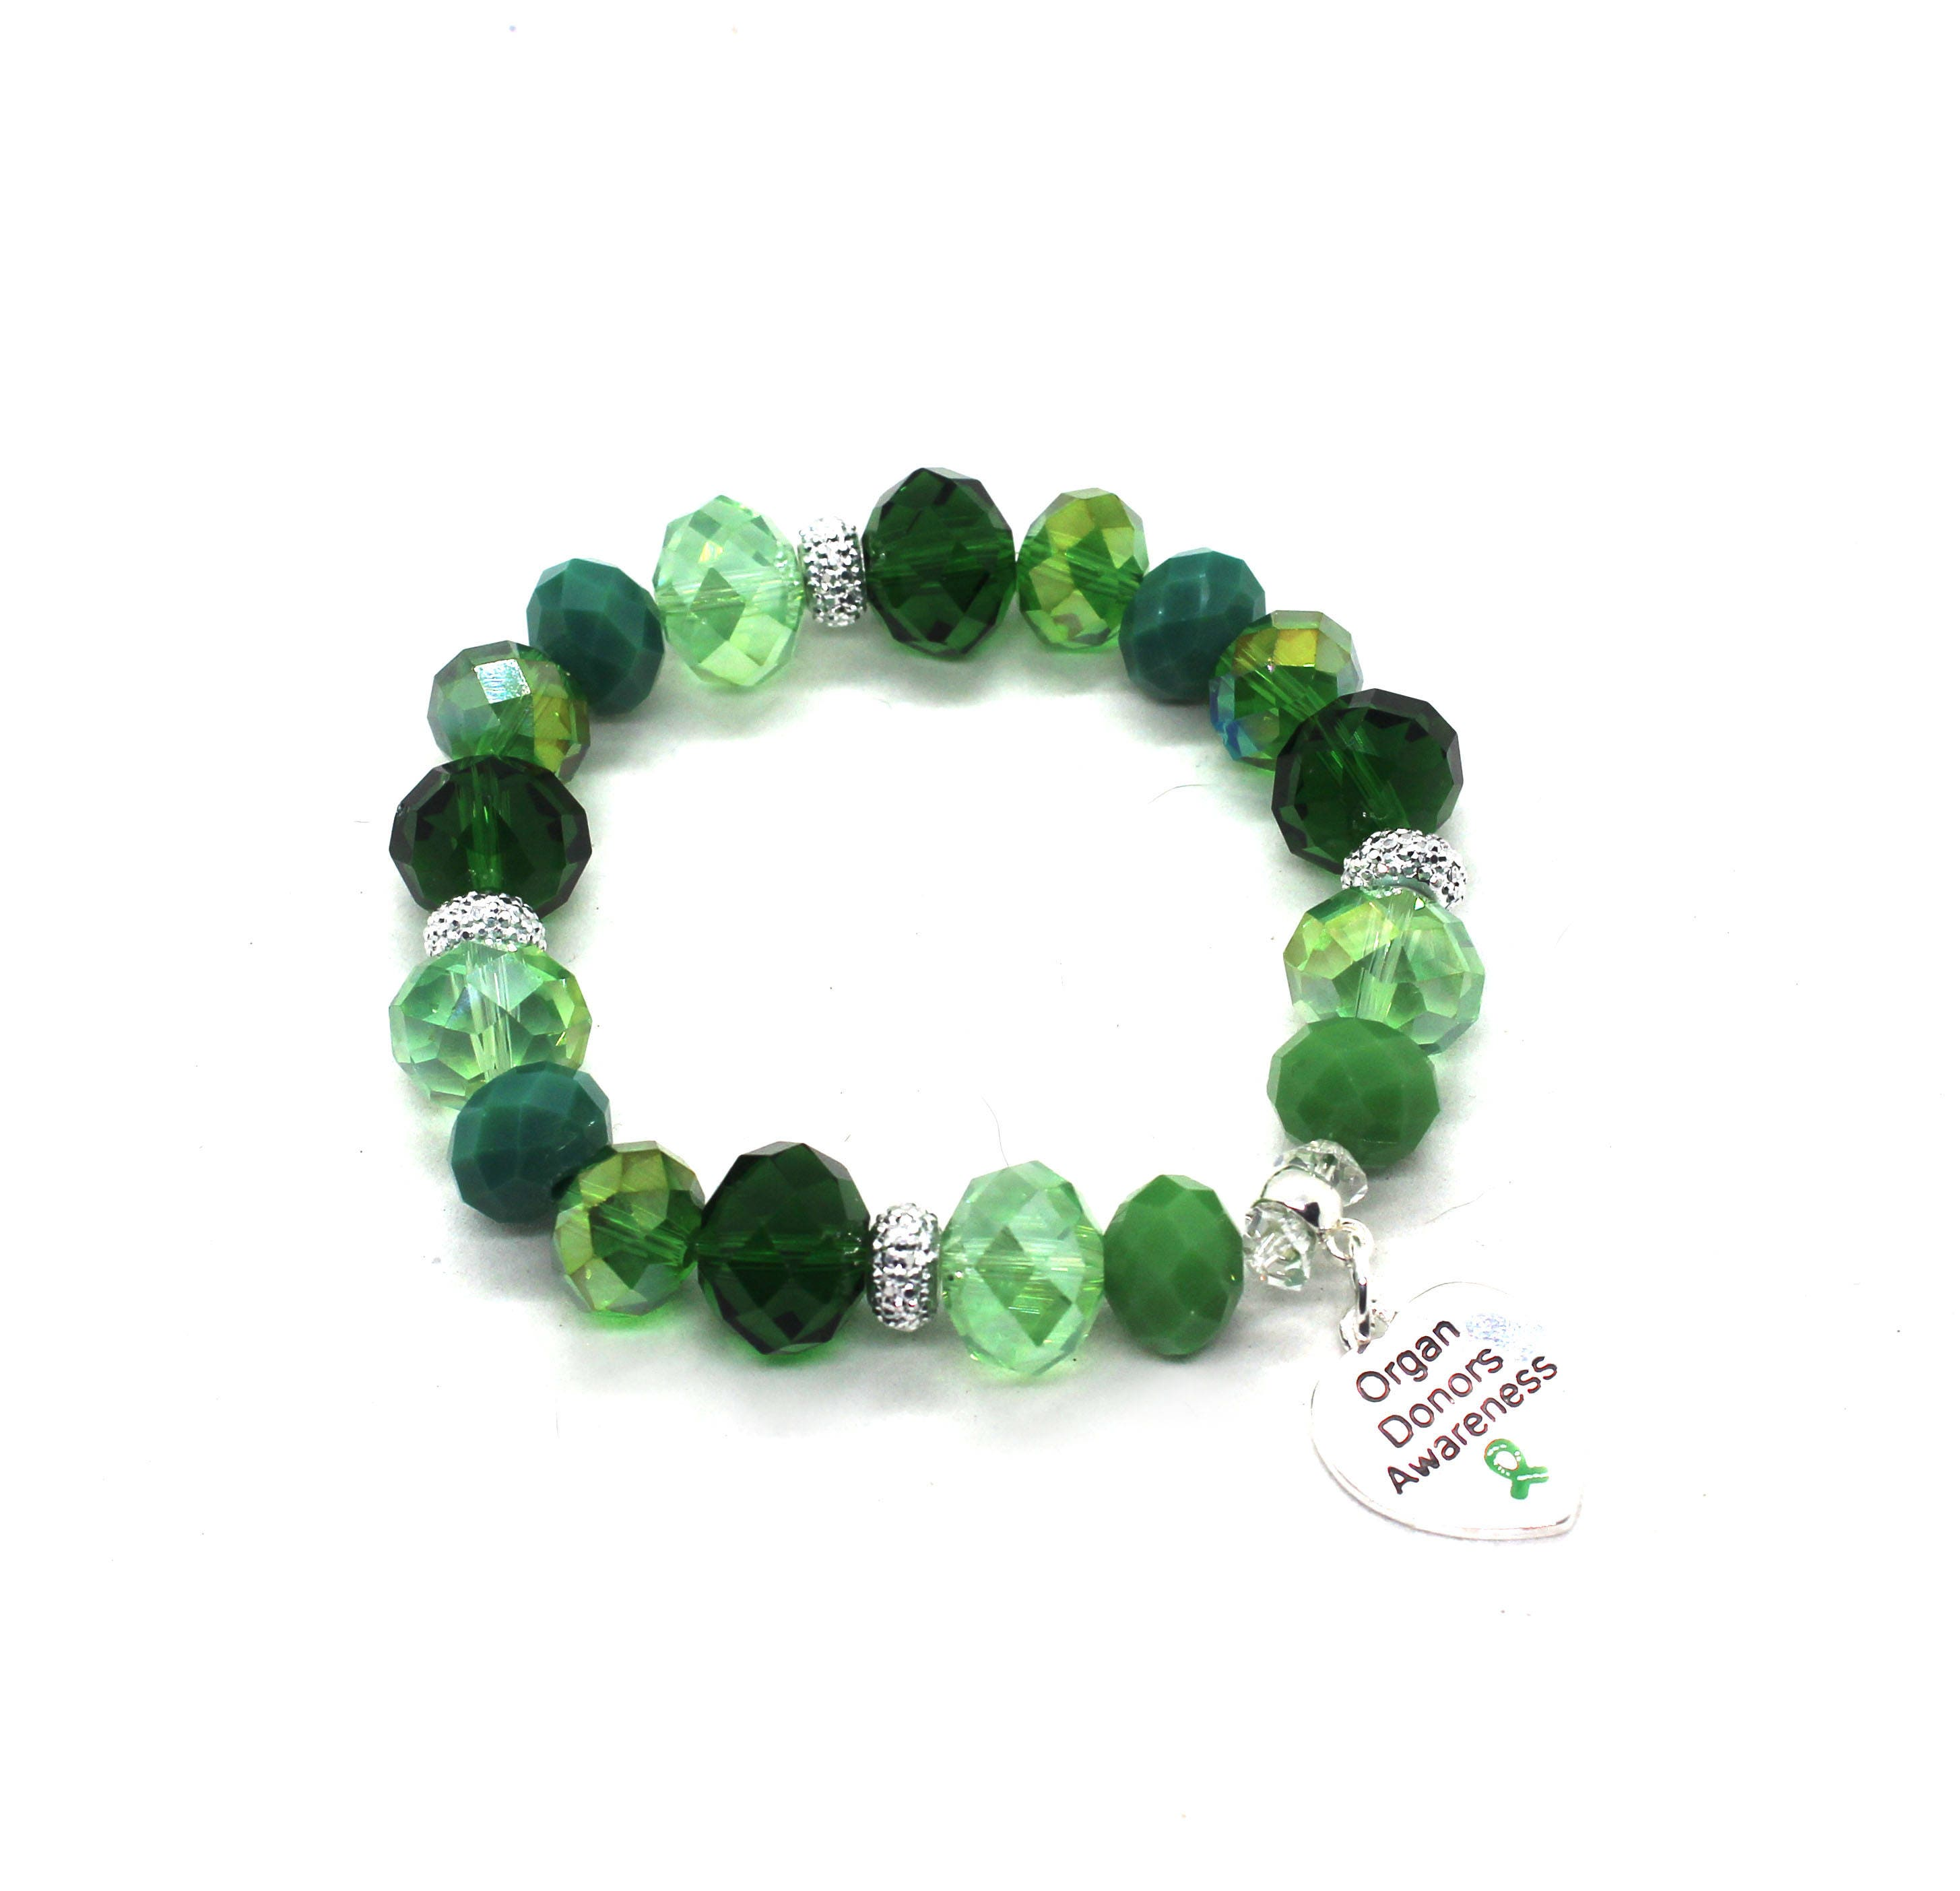 year awareness color meanings eds long activities month may bracelet caymancode